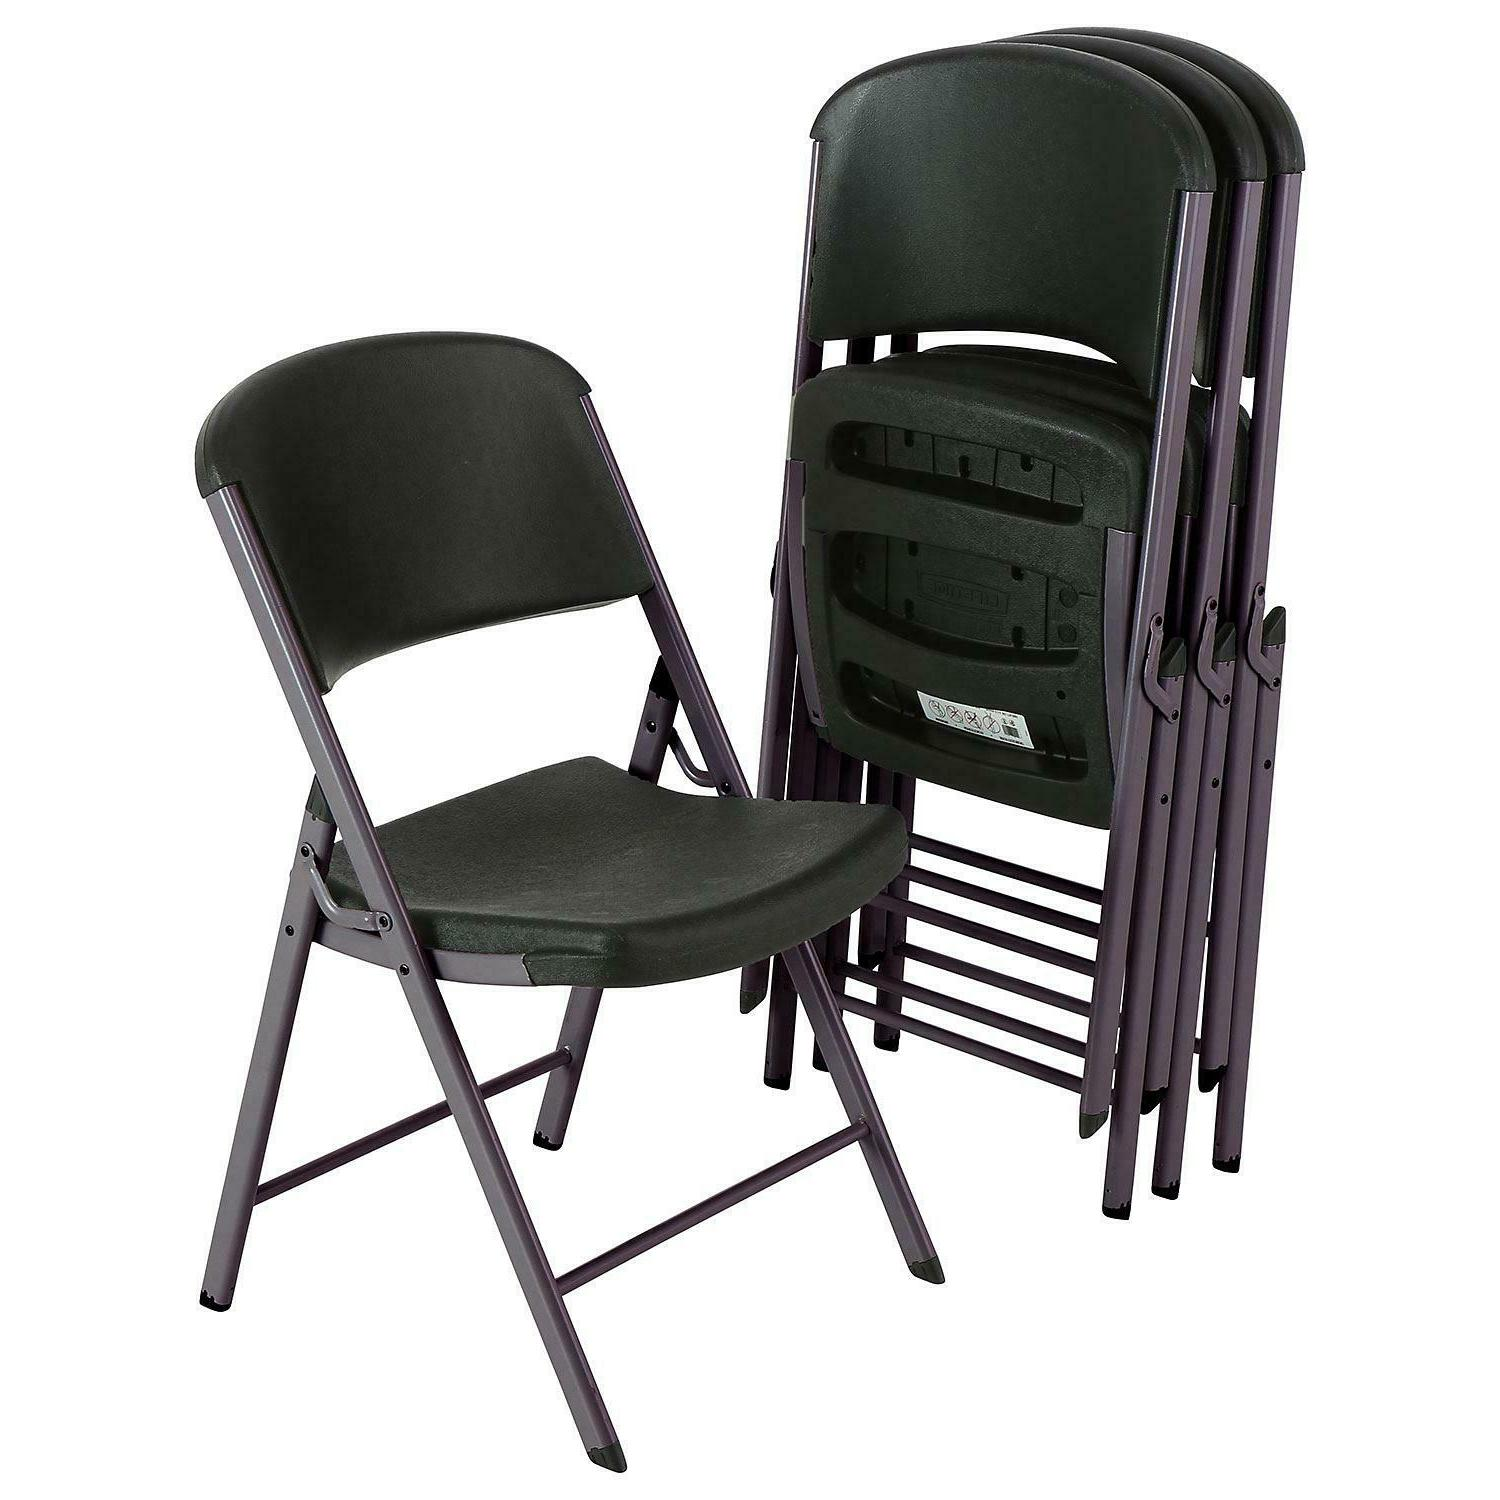 commercial grade contoured folding chair 80187 4